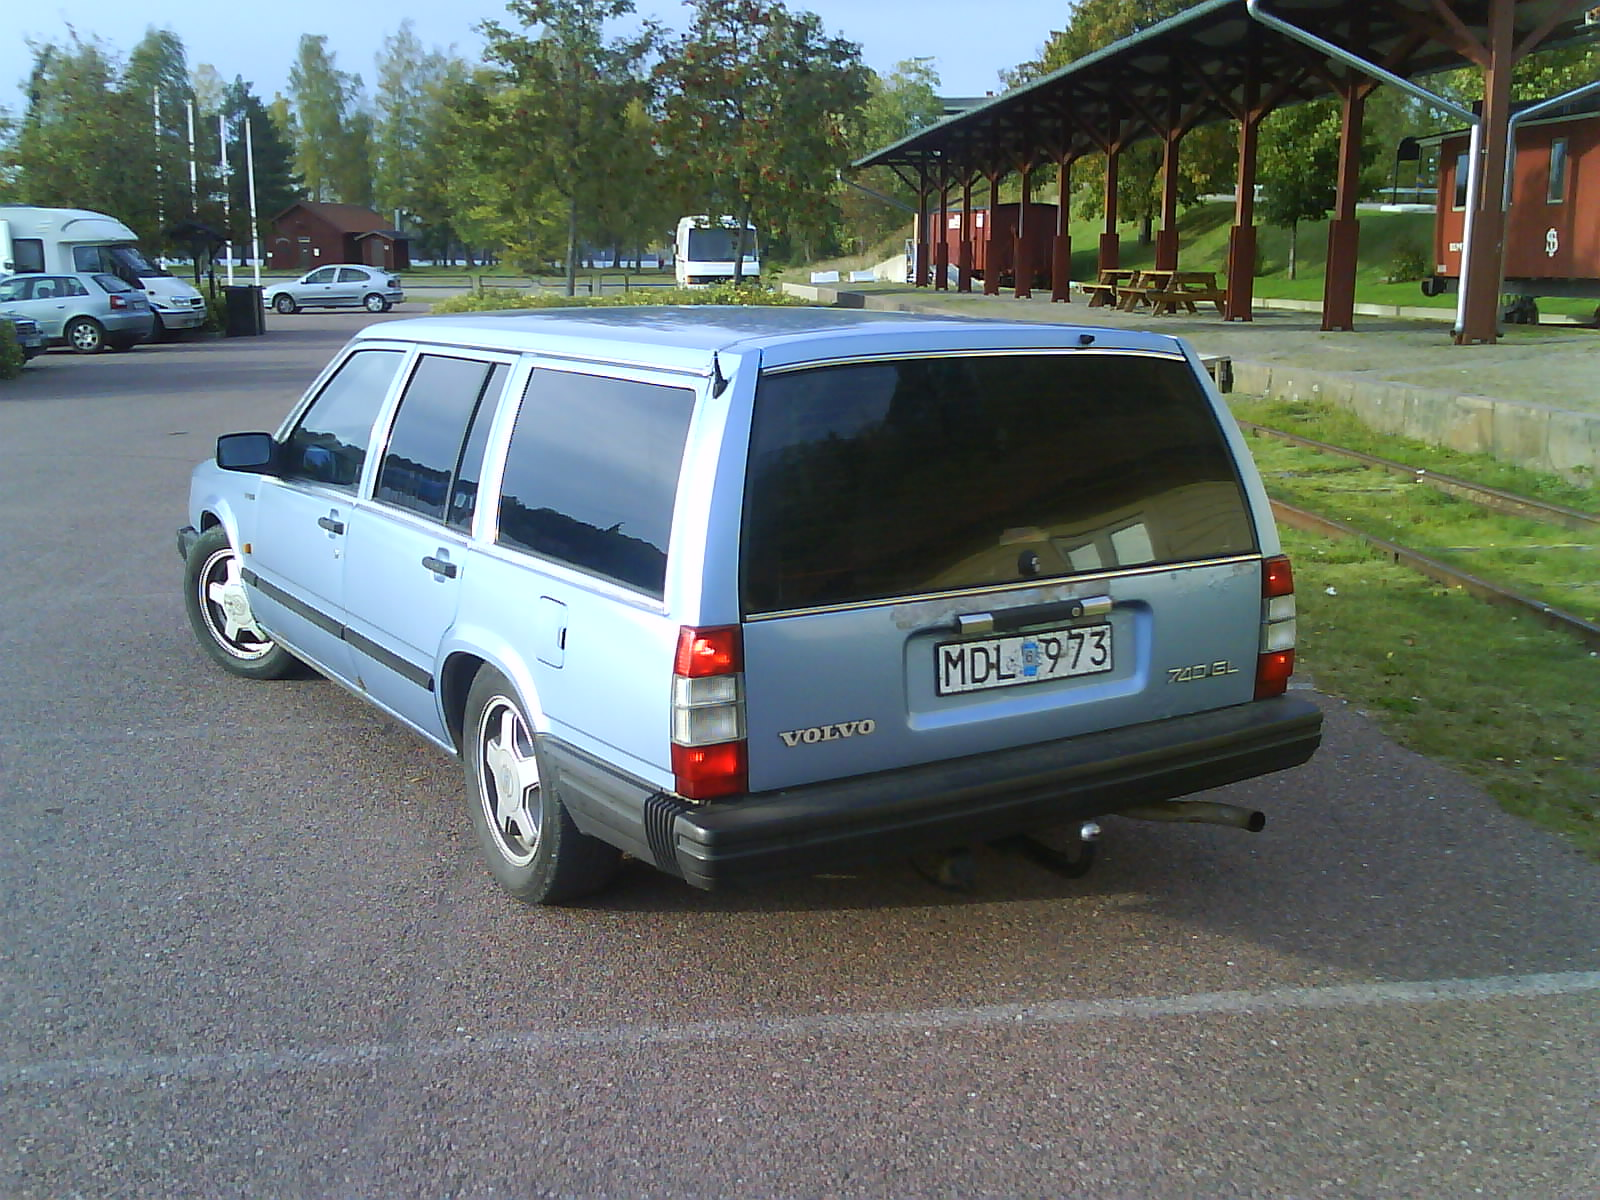 1990 volvo 740 turbo wagon specs 1990 free engine image for user manual download. Black Bedroom Furniture Sets. Home Design Ideas